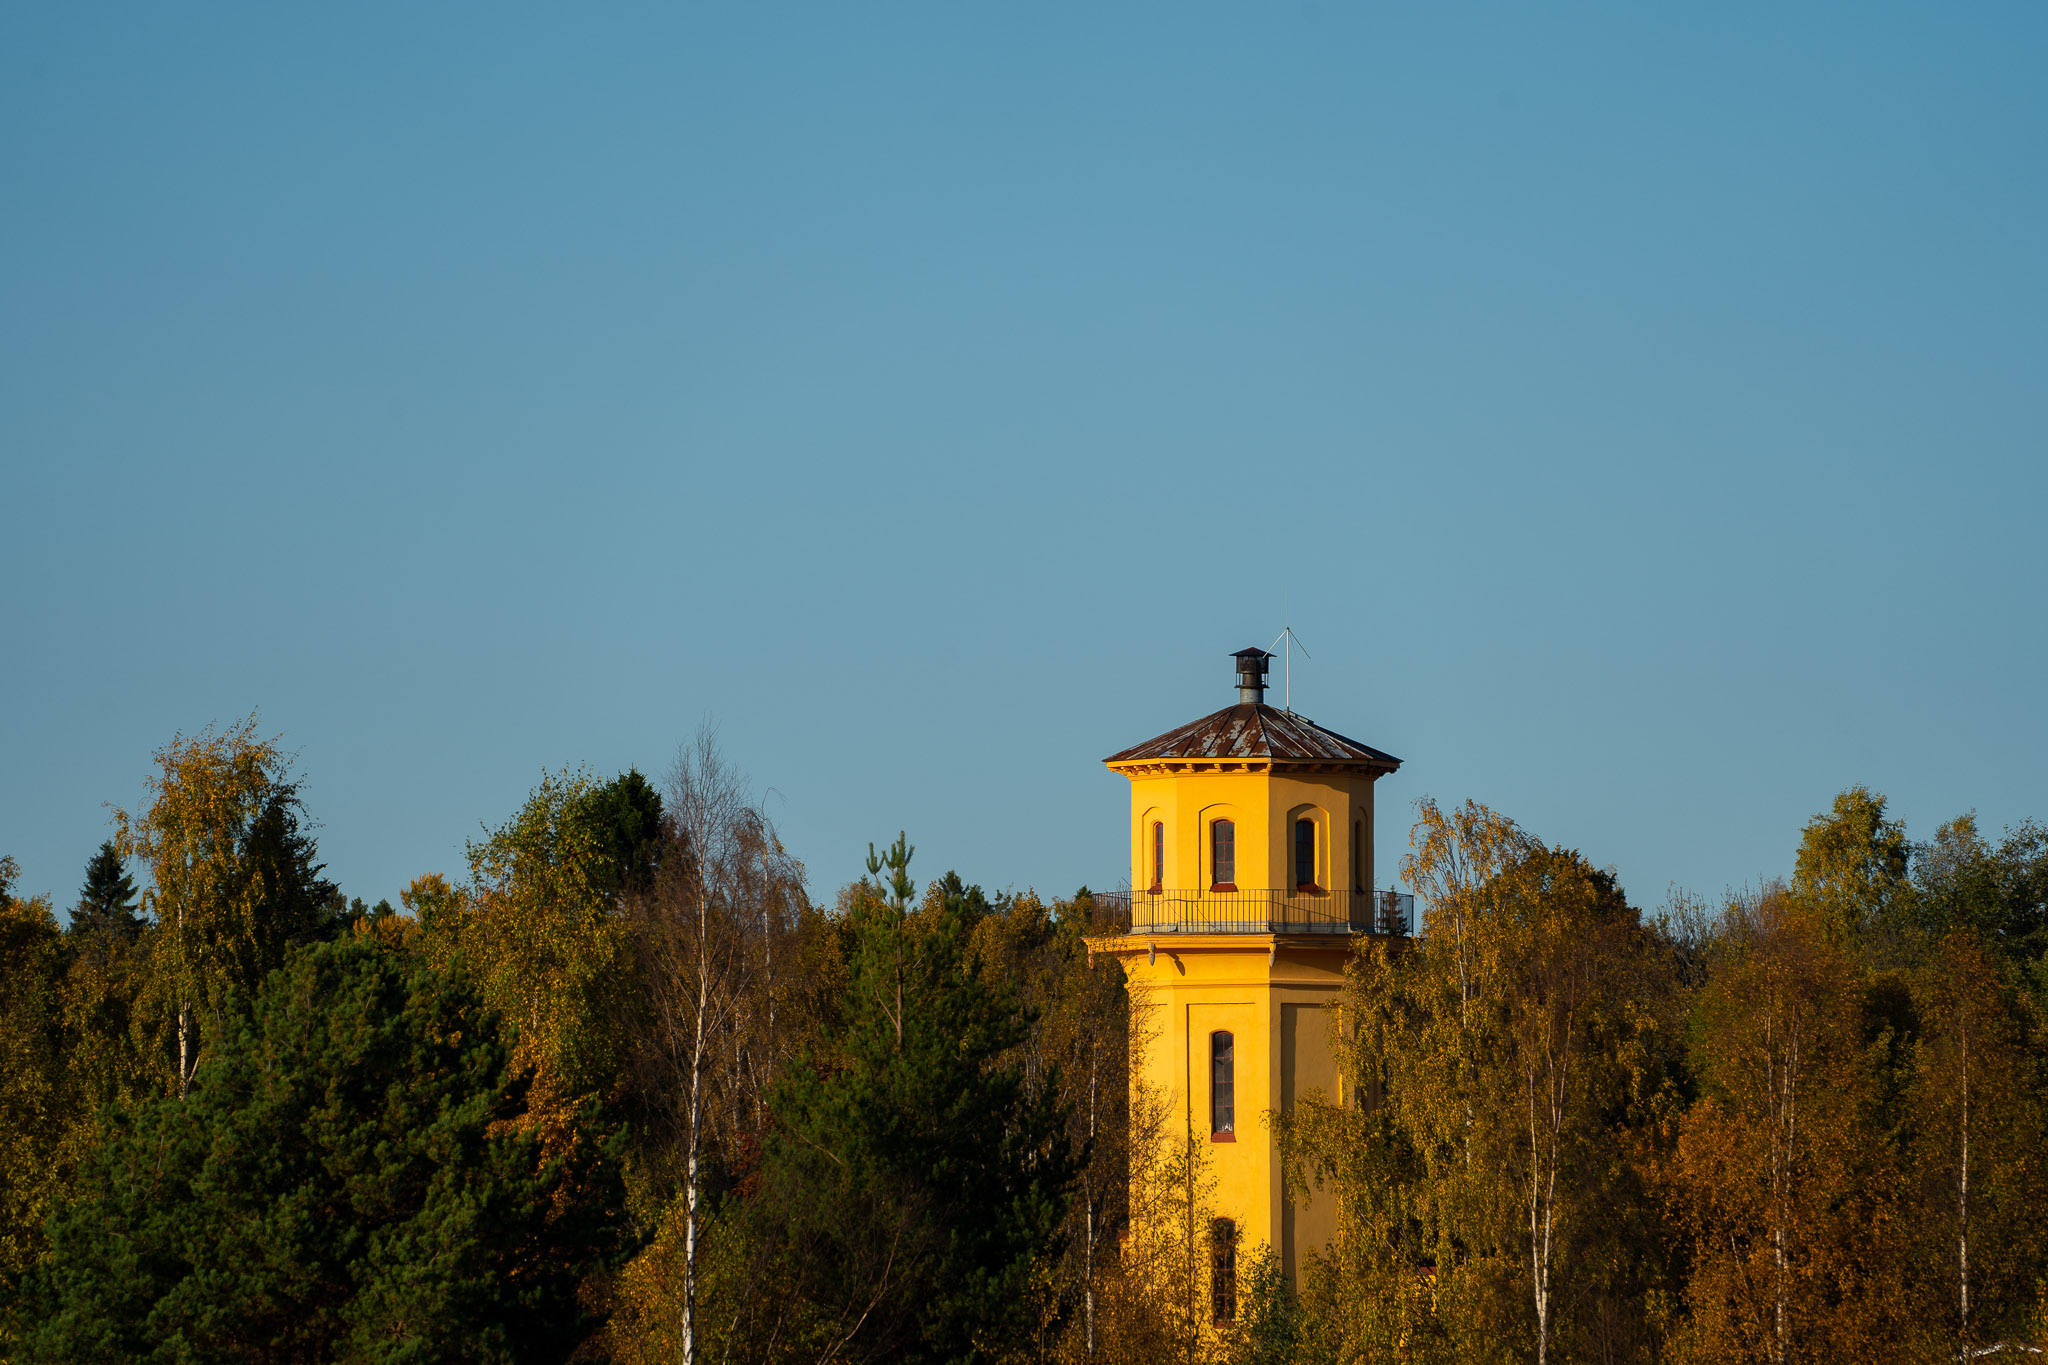 Turm in Ljusne